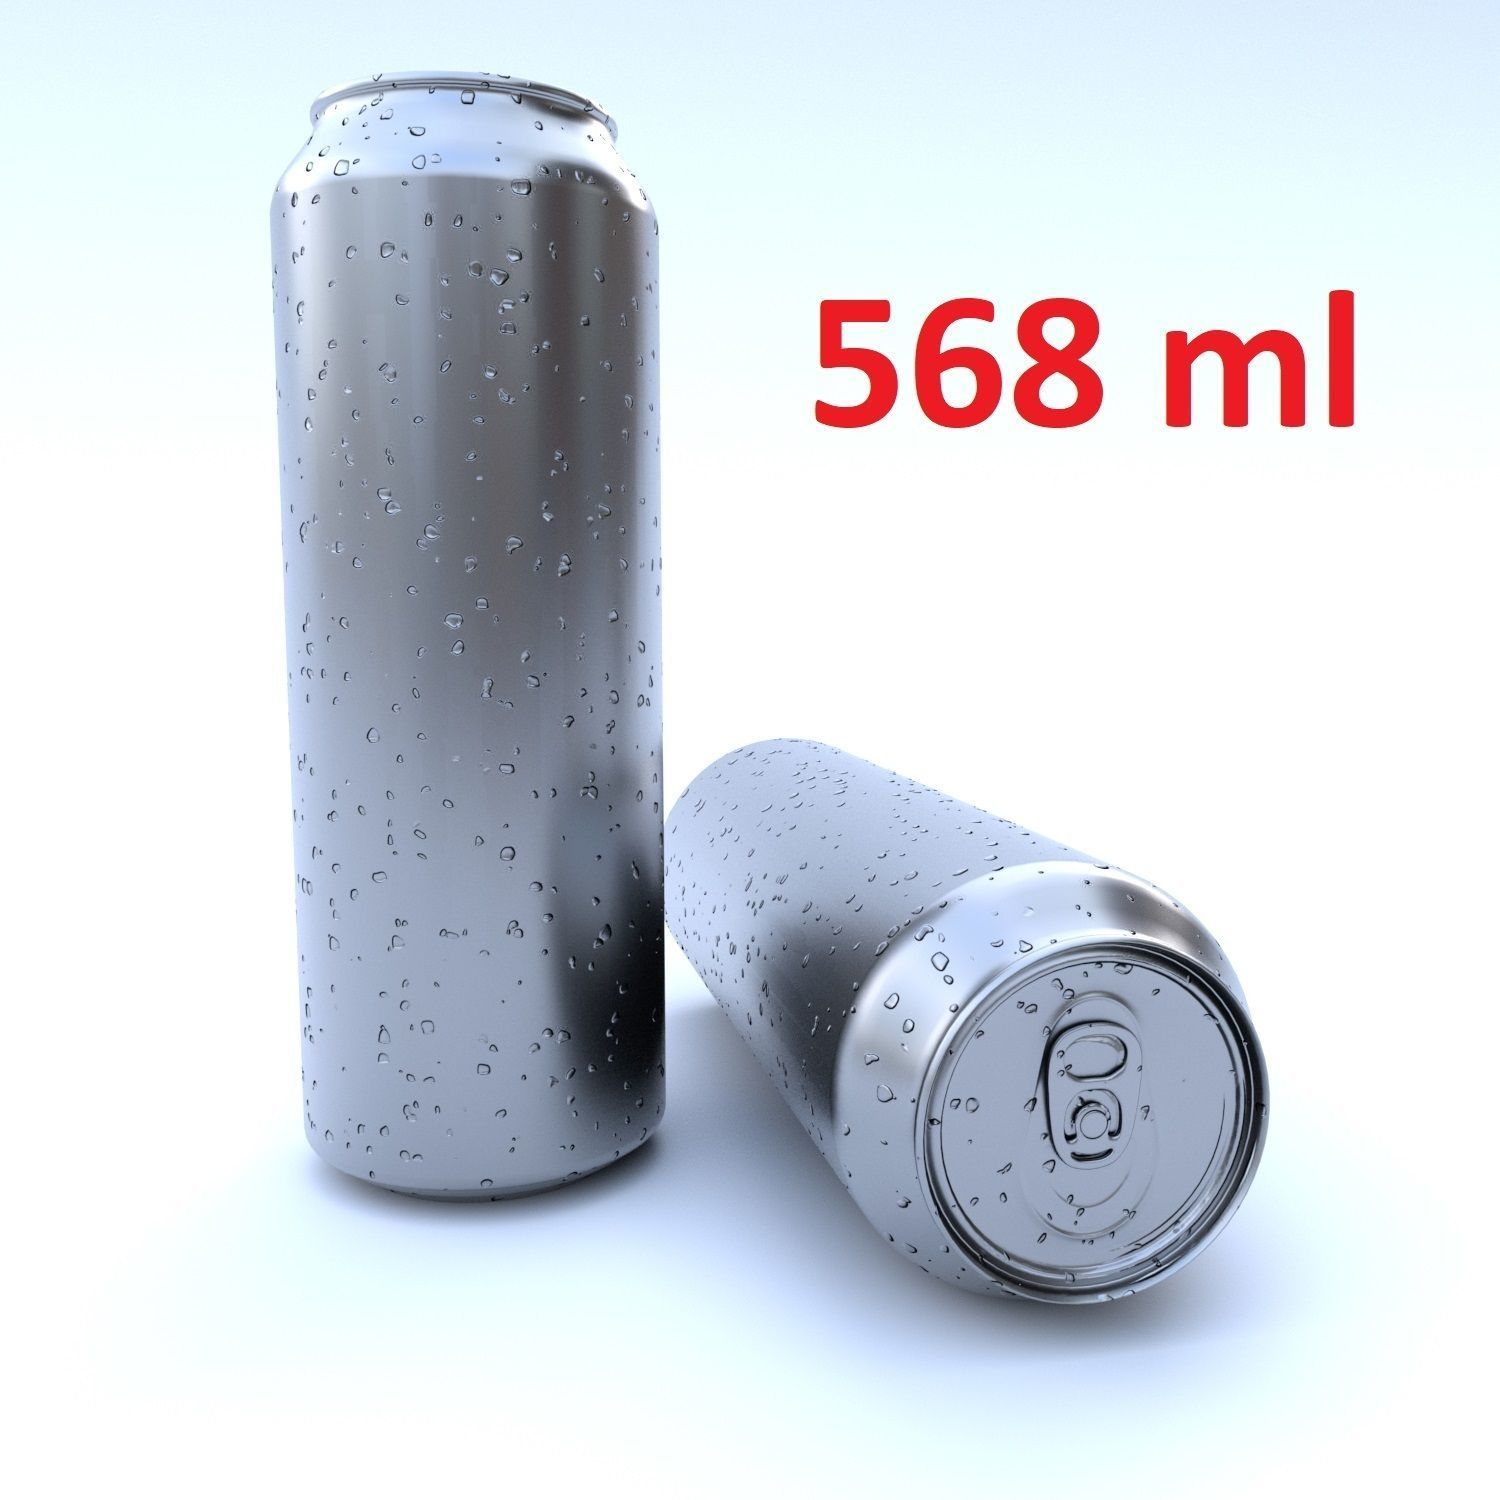 Beverage can 568 ml